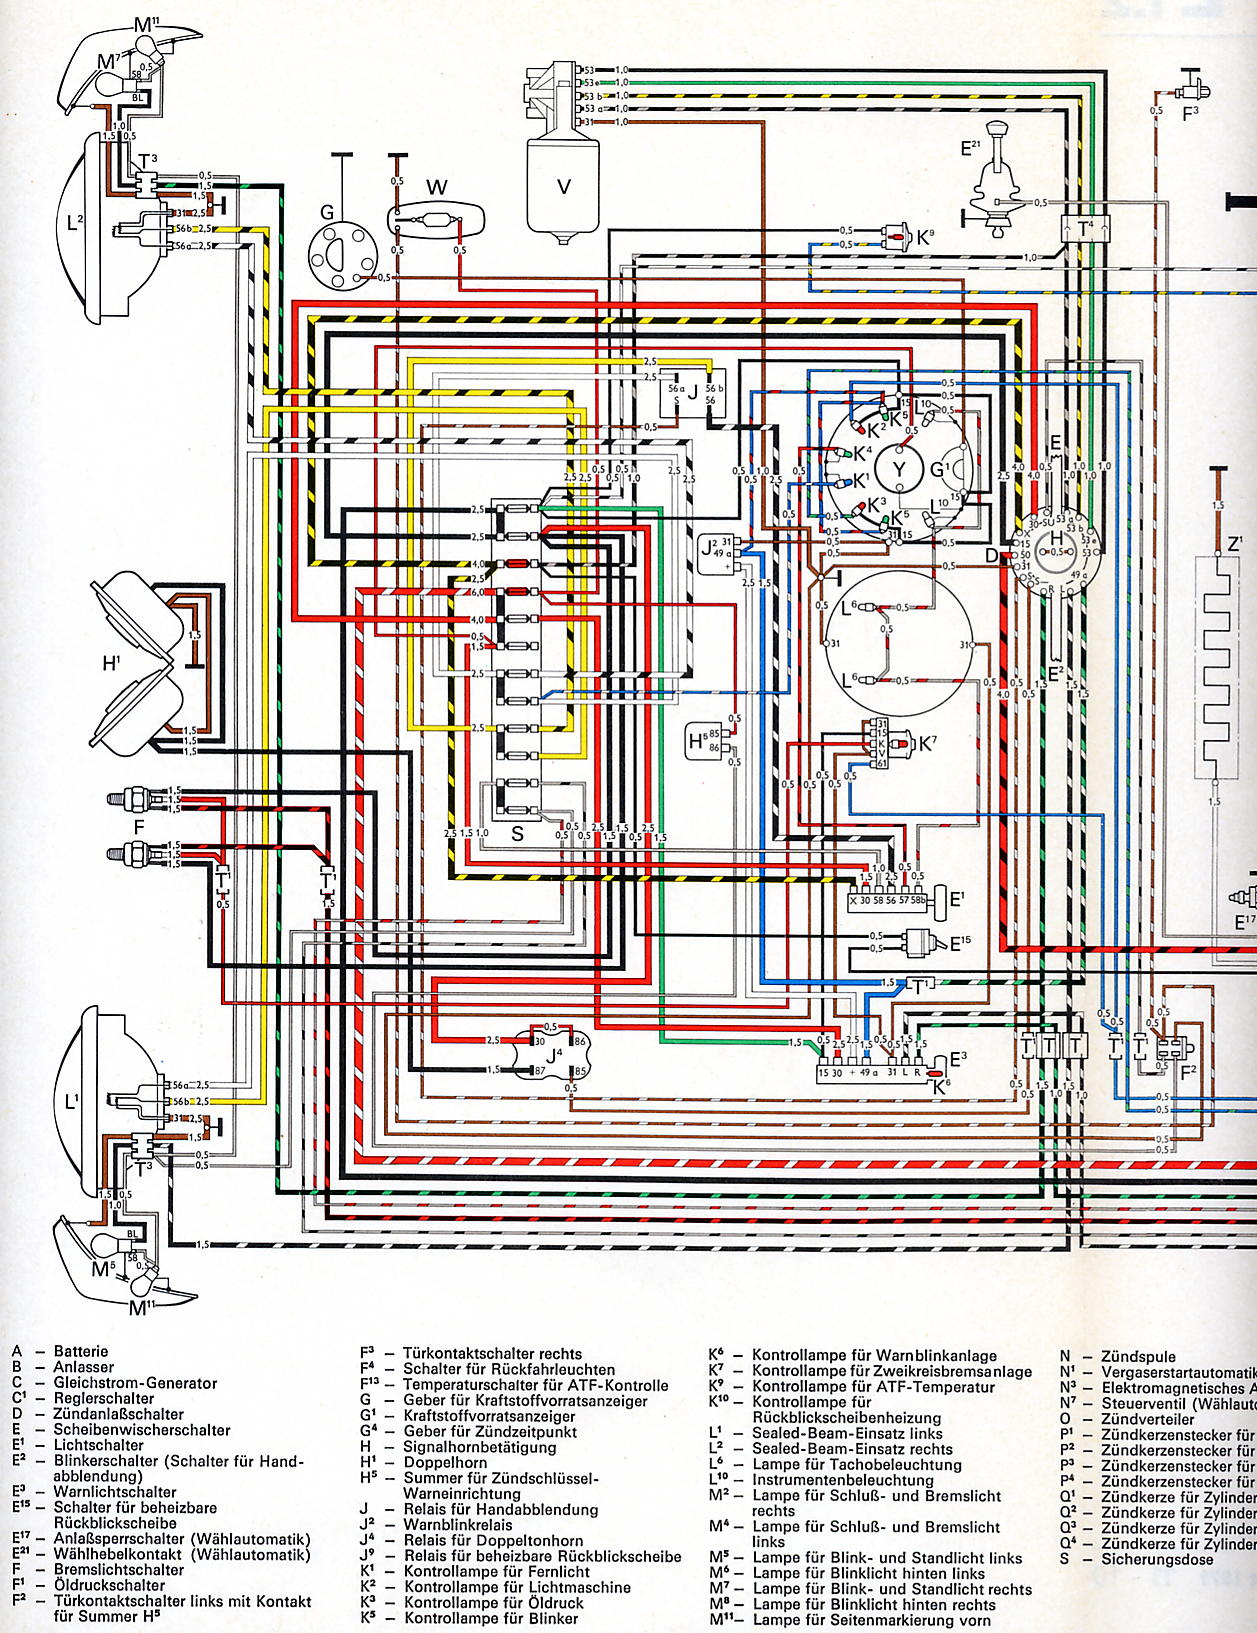 Karmann_Ghia_USA_from_August_1971 1 vw mk1 wiring diagram 1971 vw beetle wiring diagram \u2022 wiring International Tractor Wiring Diagram at gsmx.co